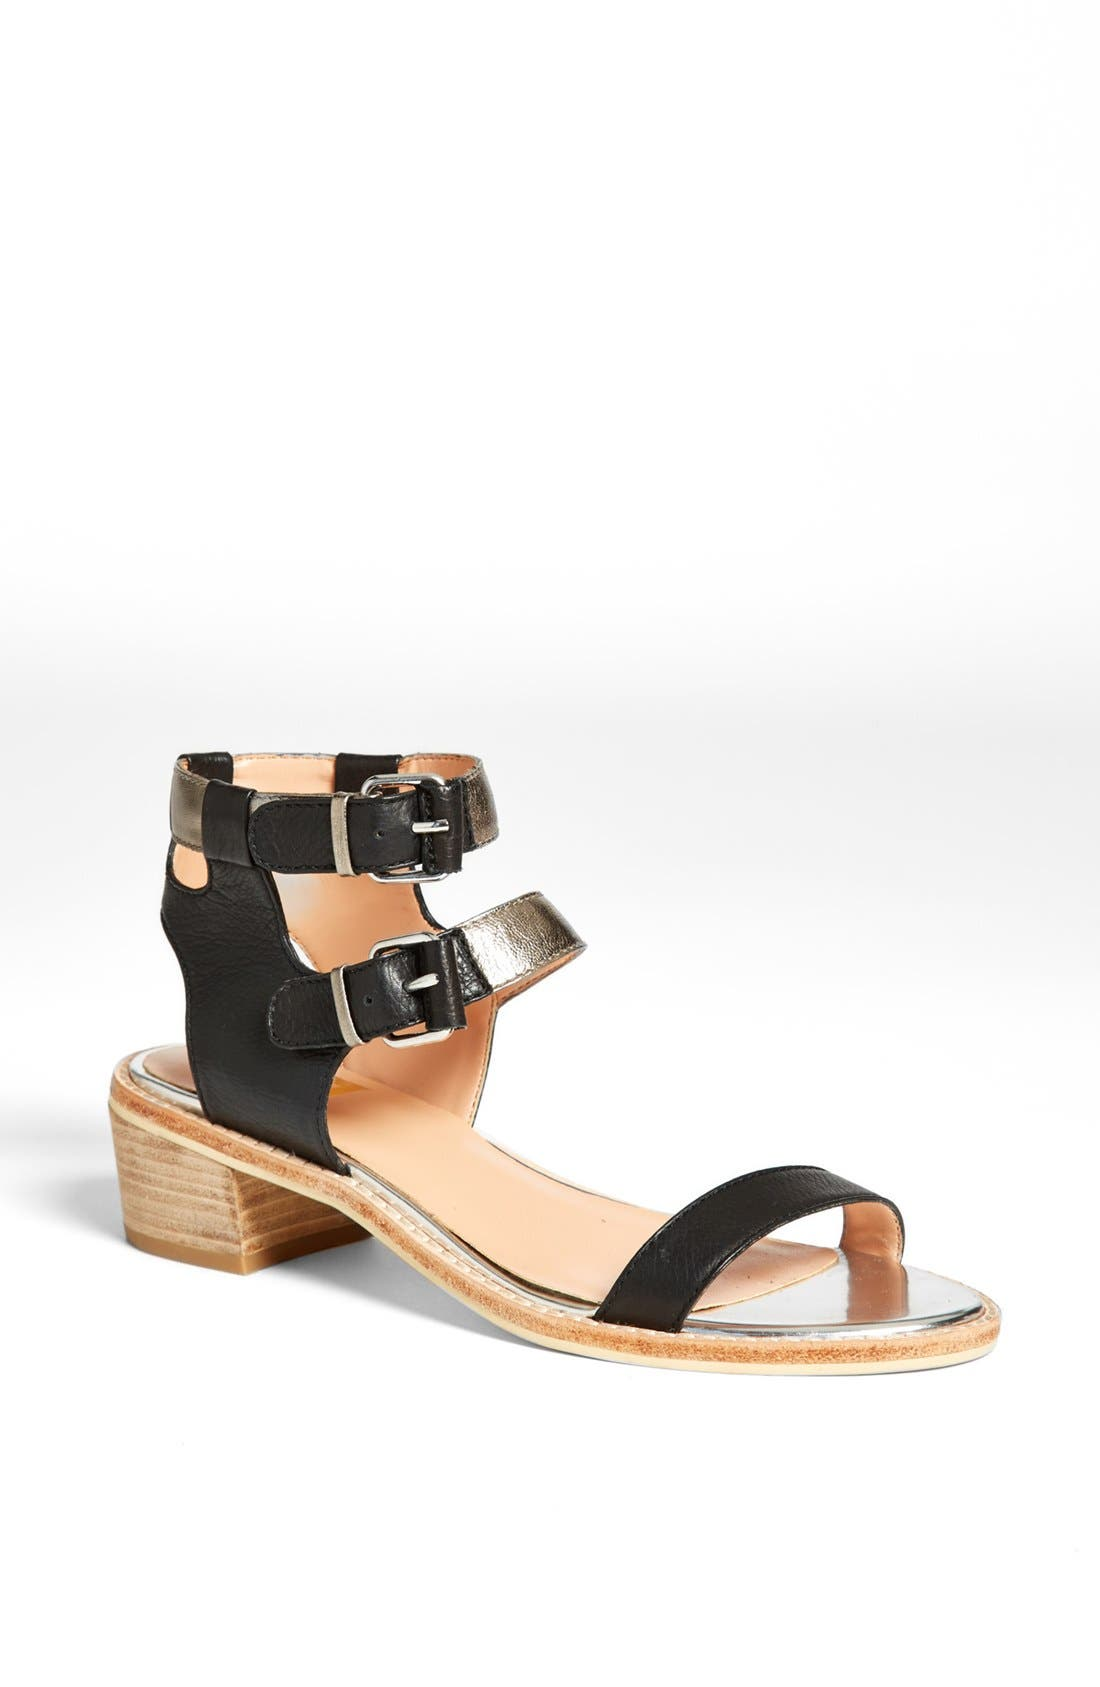 DV BY DOLCE VITA, 'Zinc' Sandal, Main thumbnail 1, color, 001